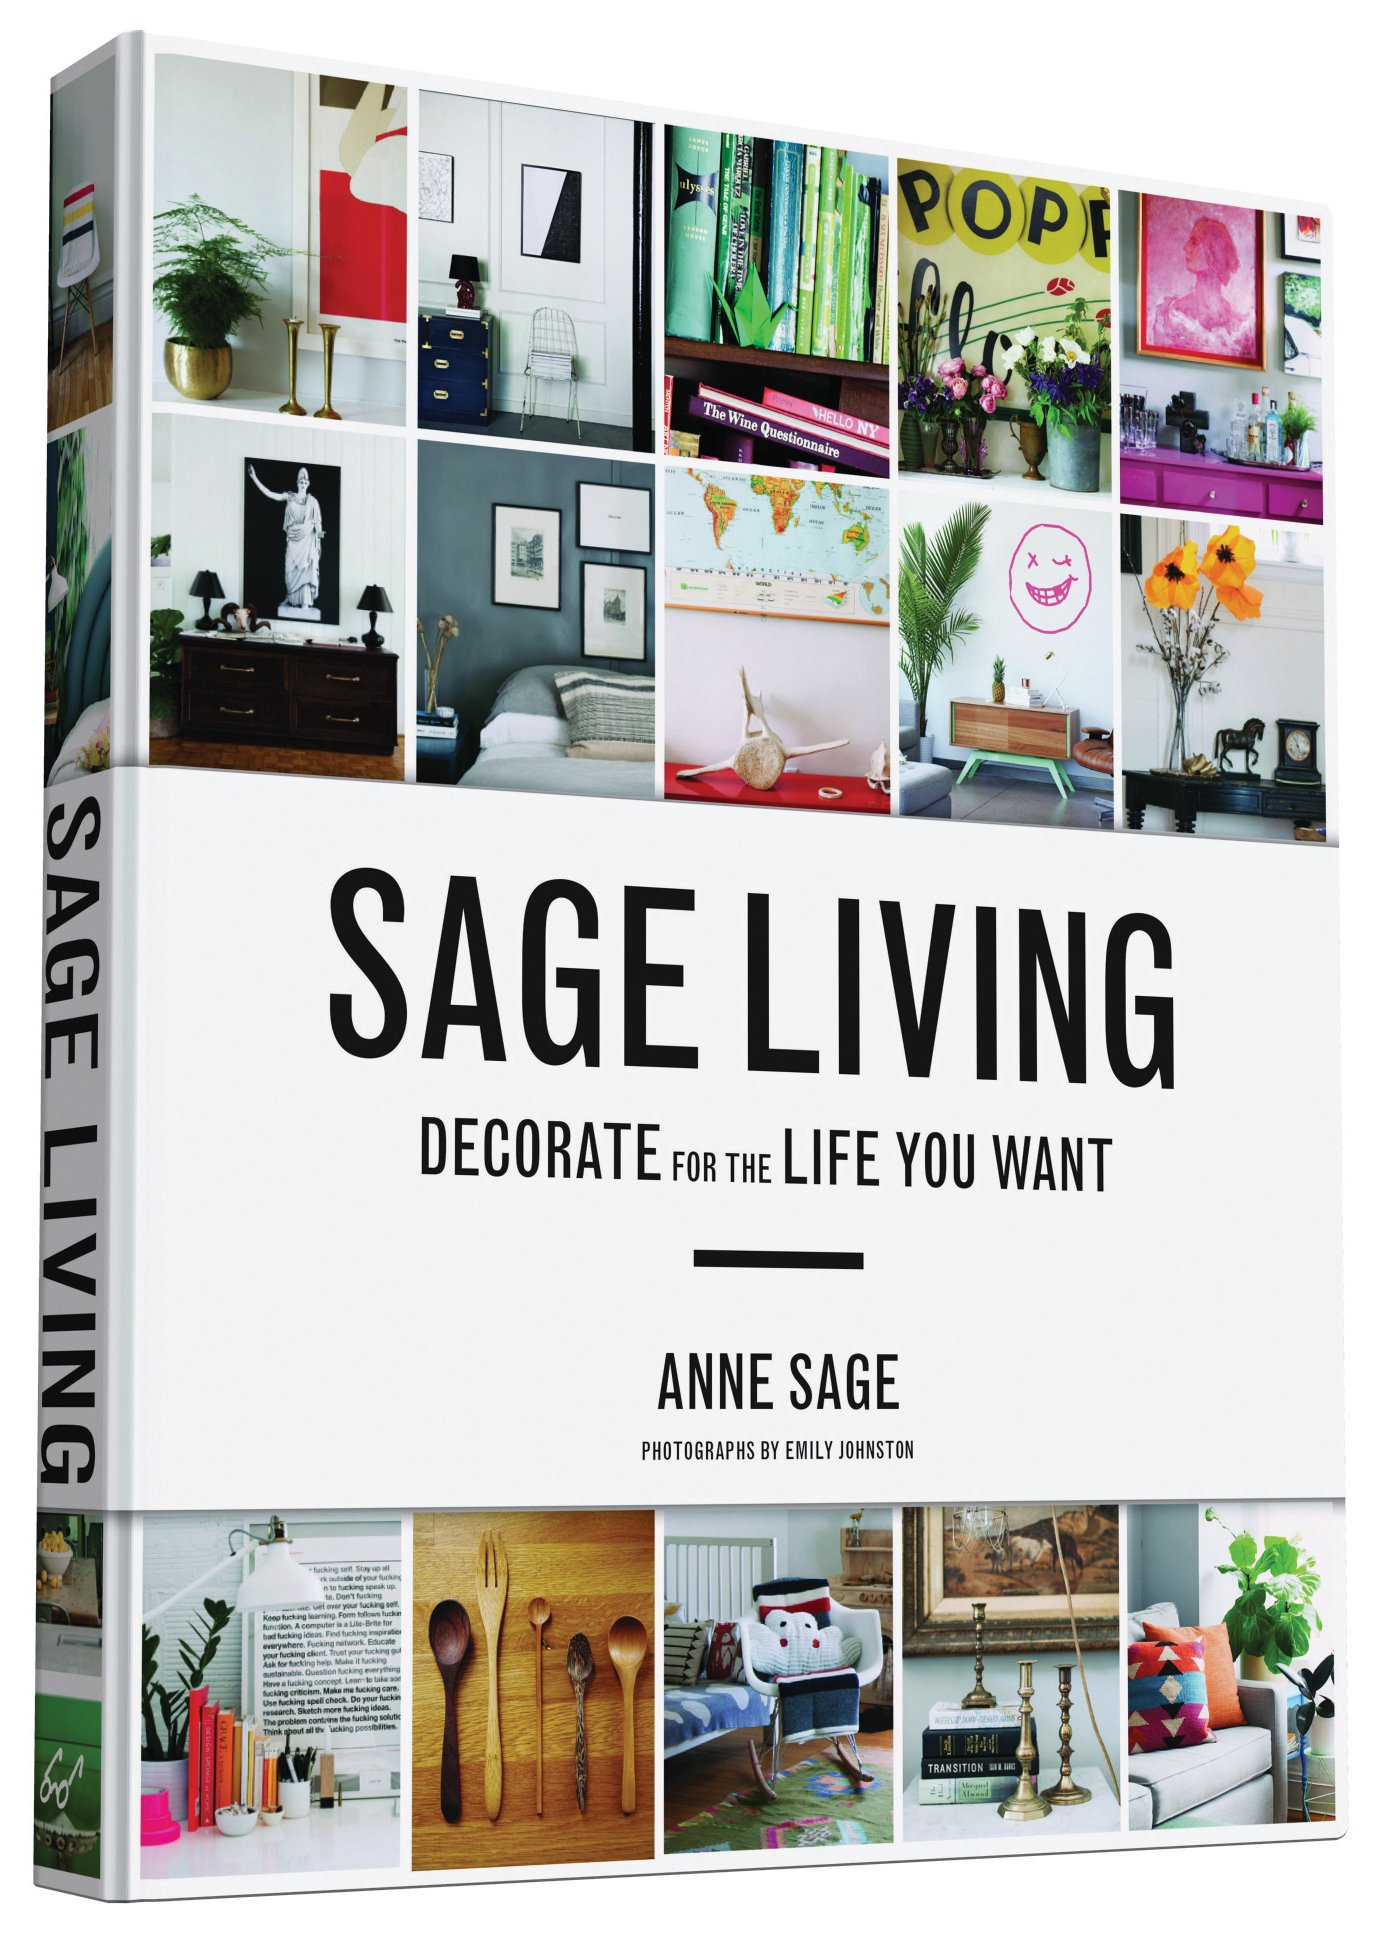 Sage Living Room Sage Living Decorate For The Life You Want Anne Sage Emily